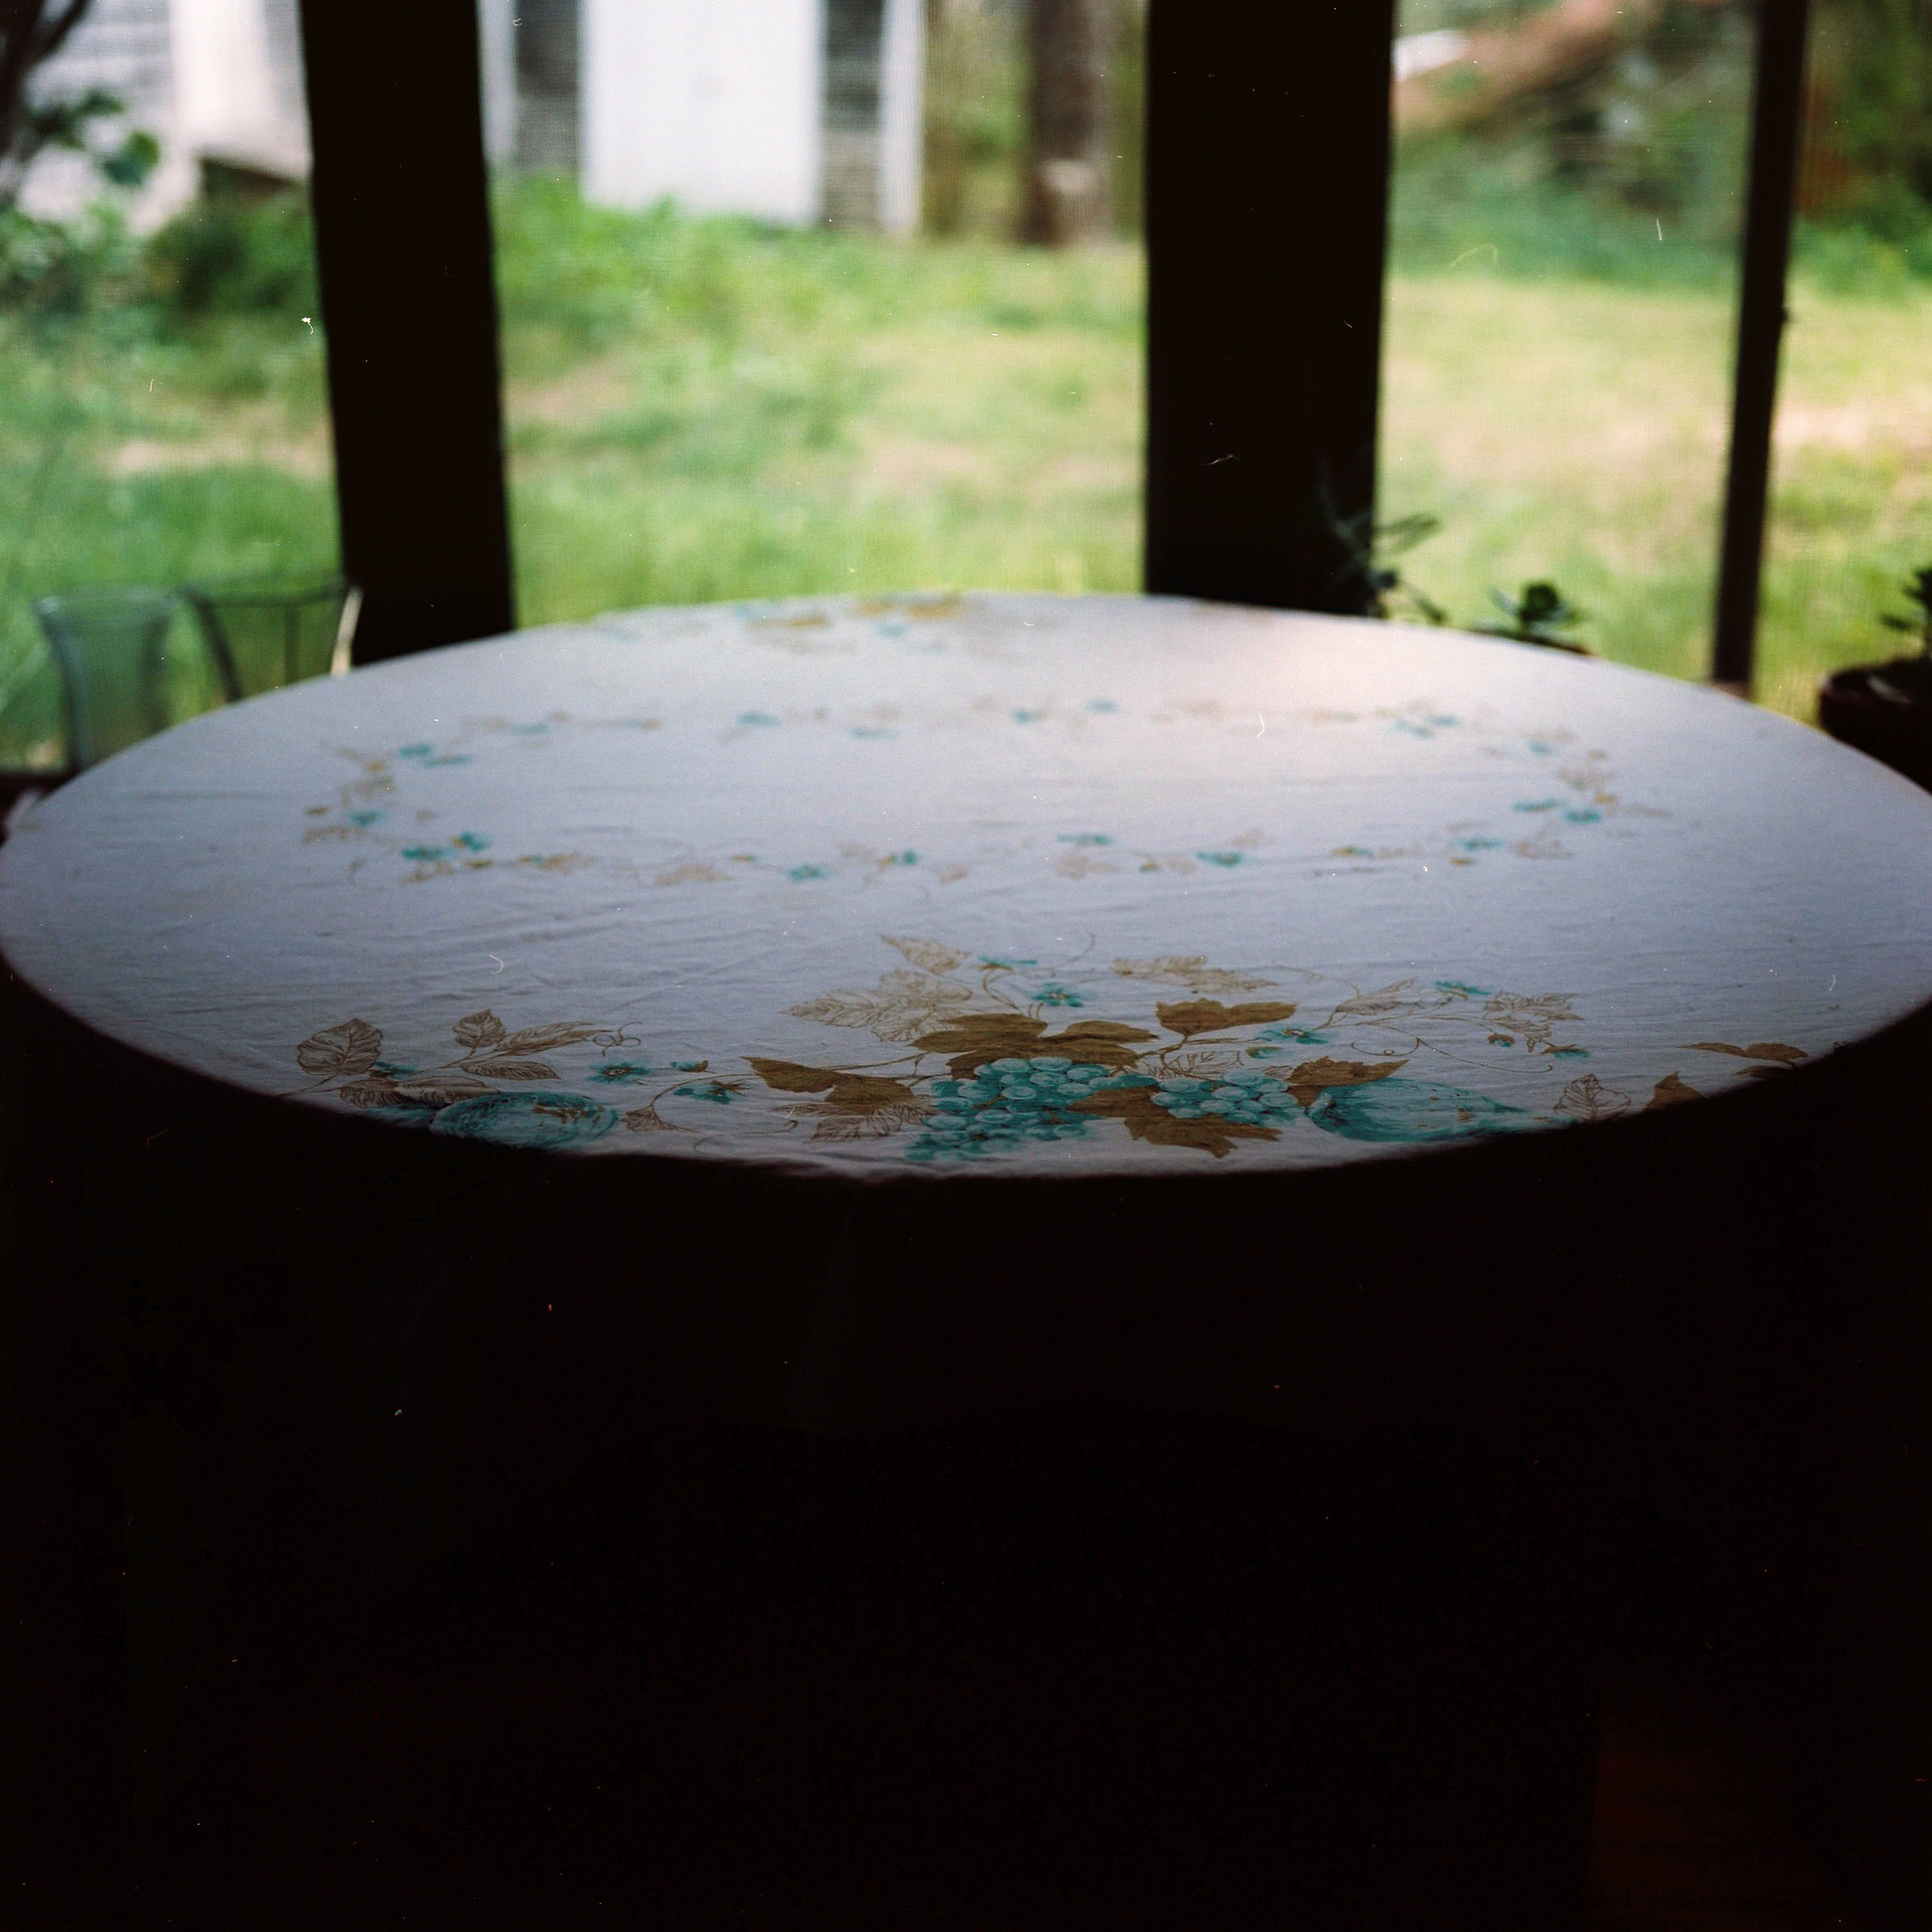 zach and el's new tablecloth ii.jpg